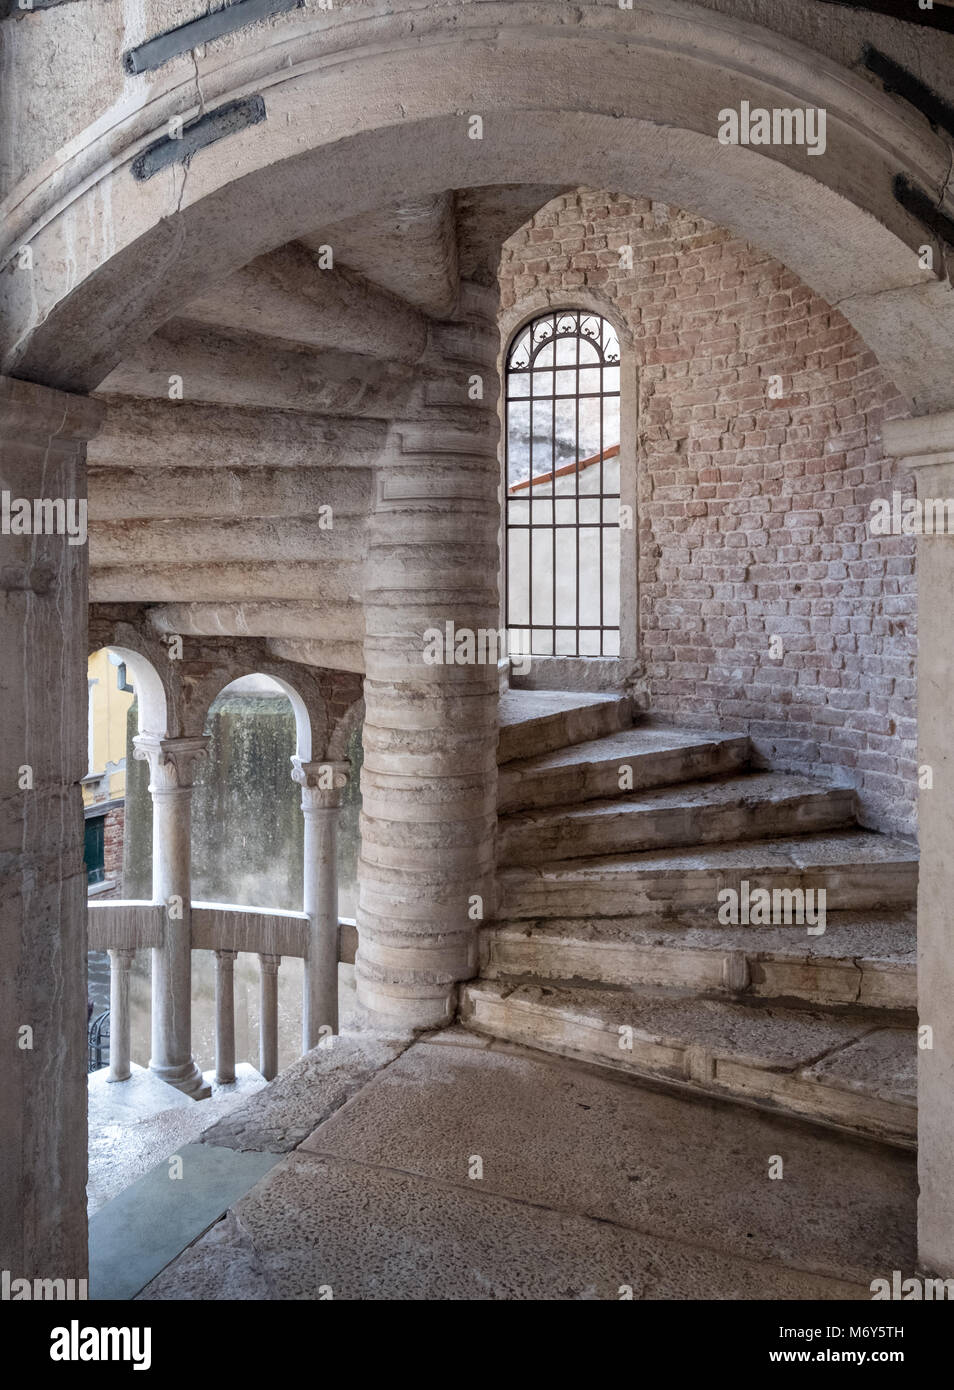 View of the stone spiral staircase structure at Palazzo